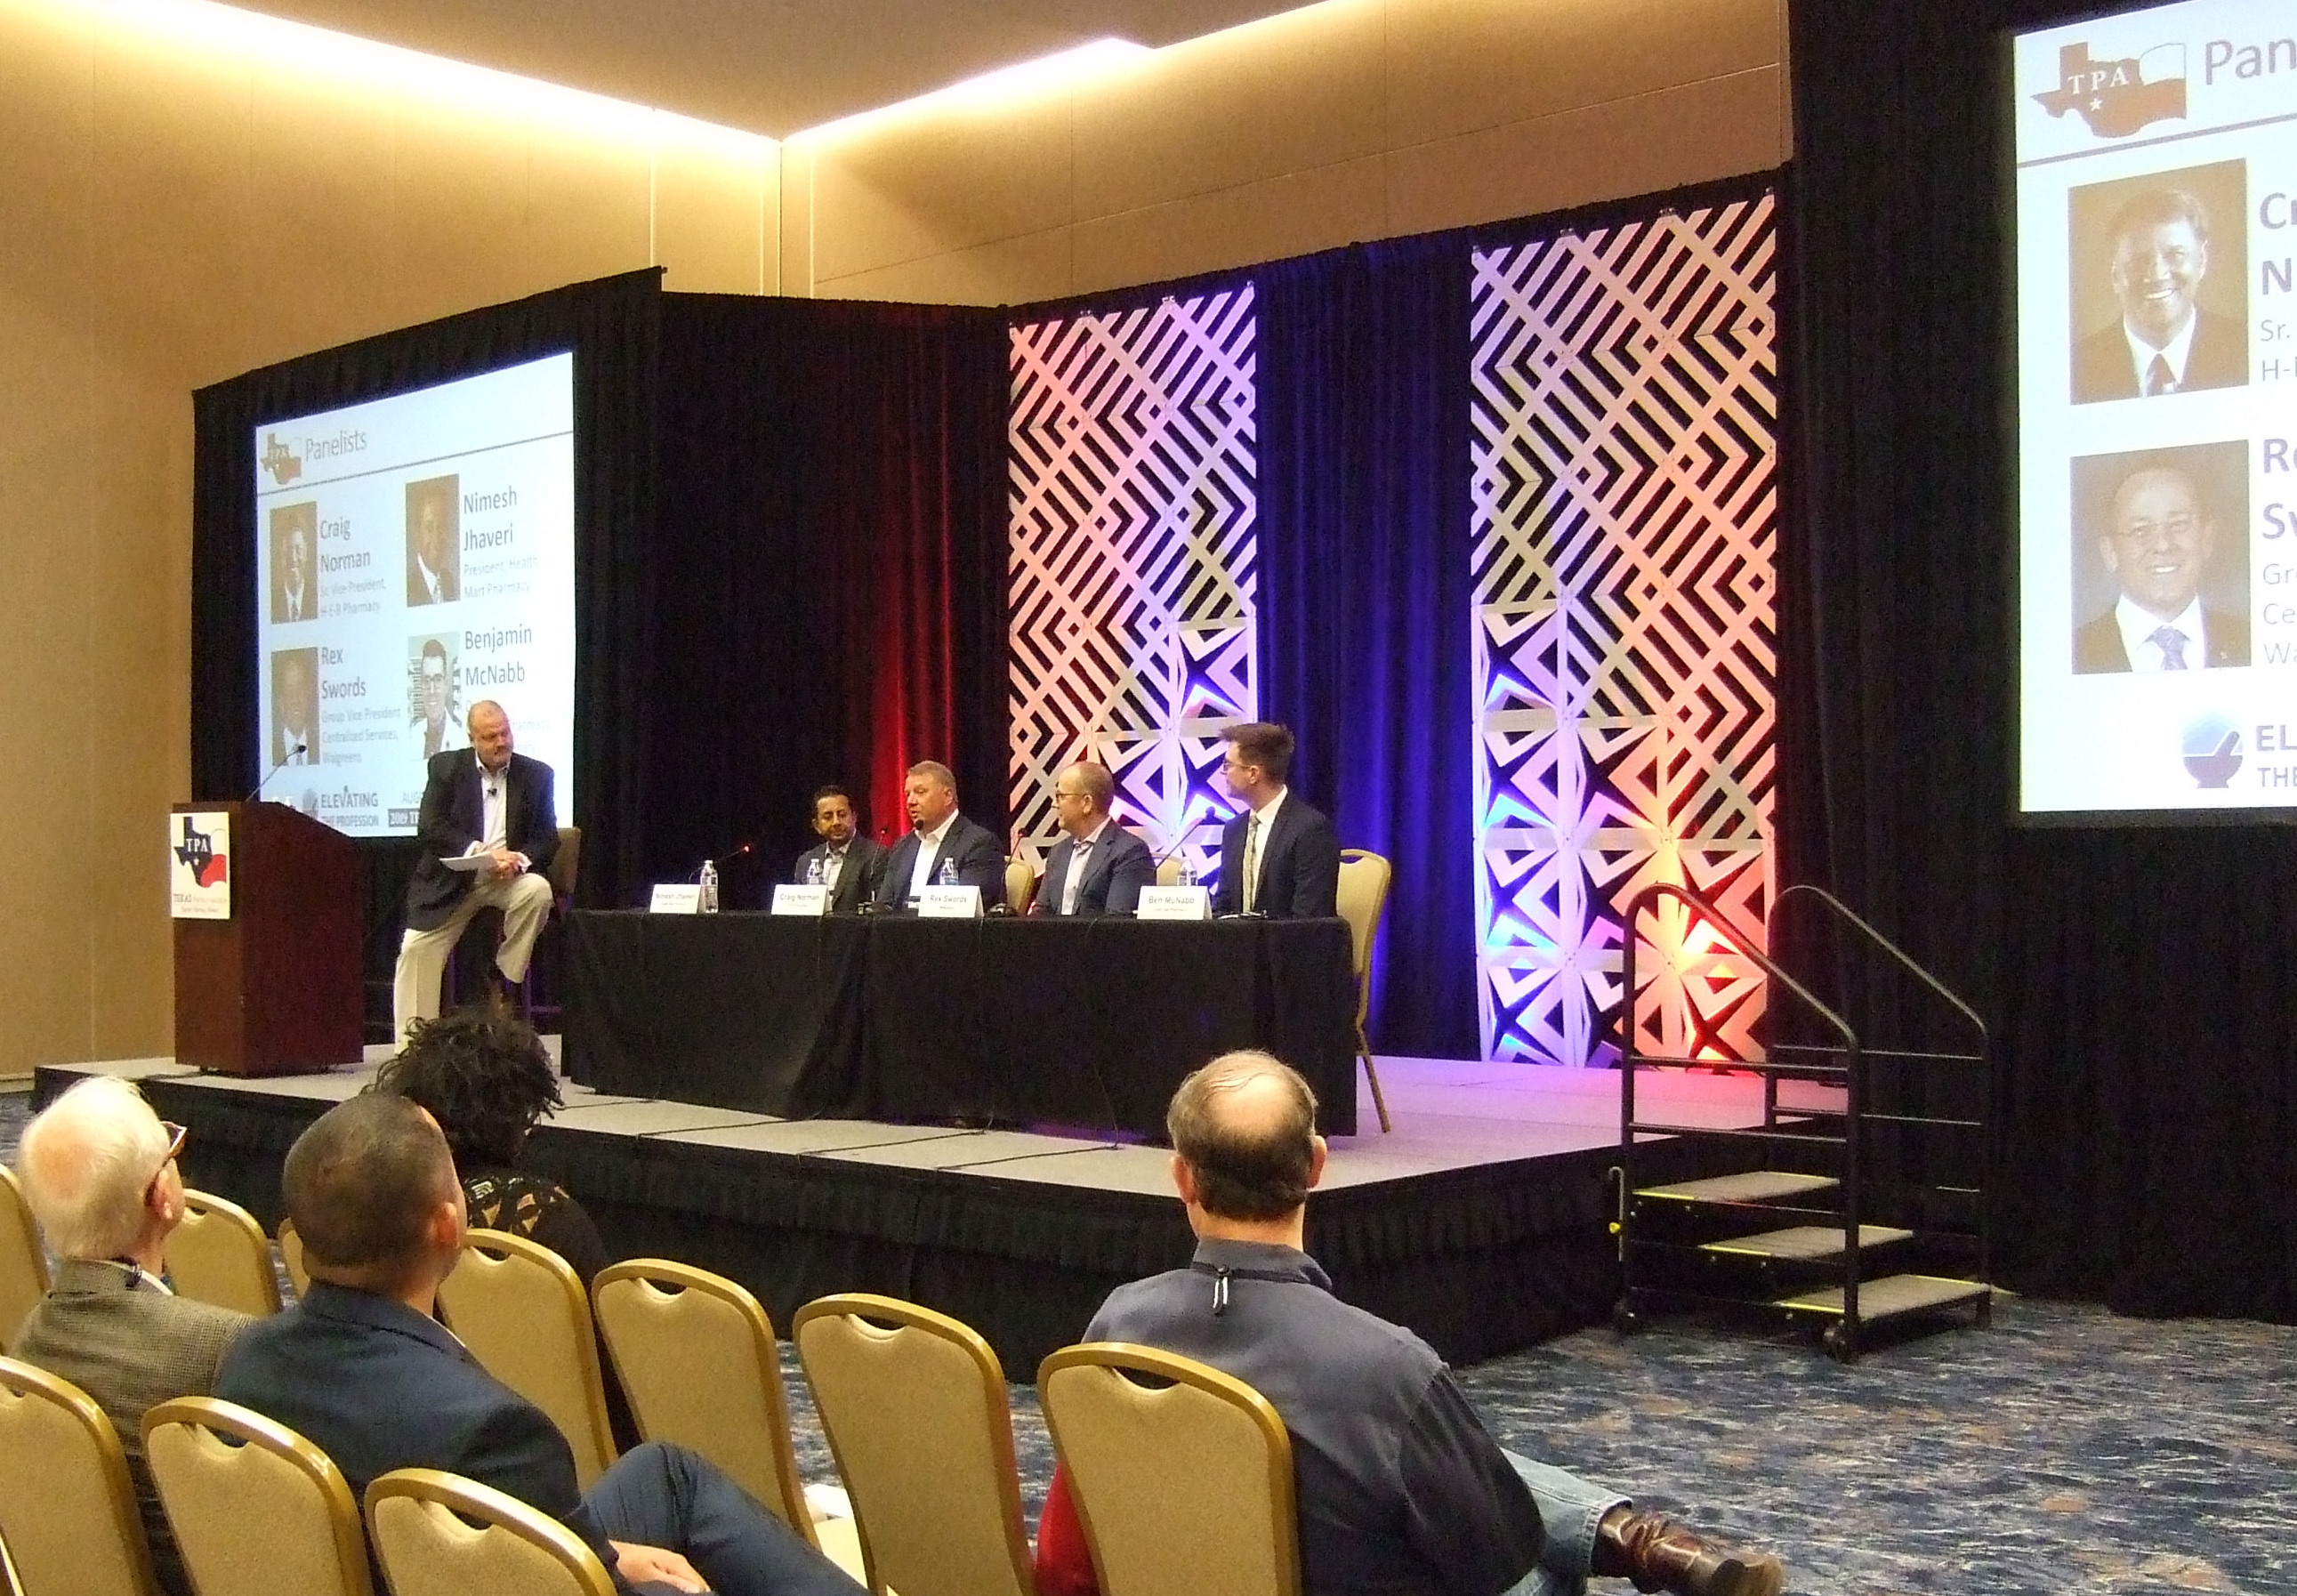 Chris Dimos leads a panel discussion at the 2019 TPA conference.